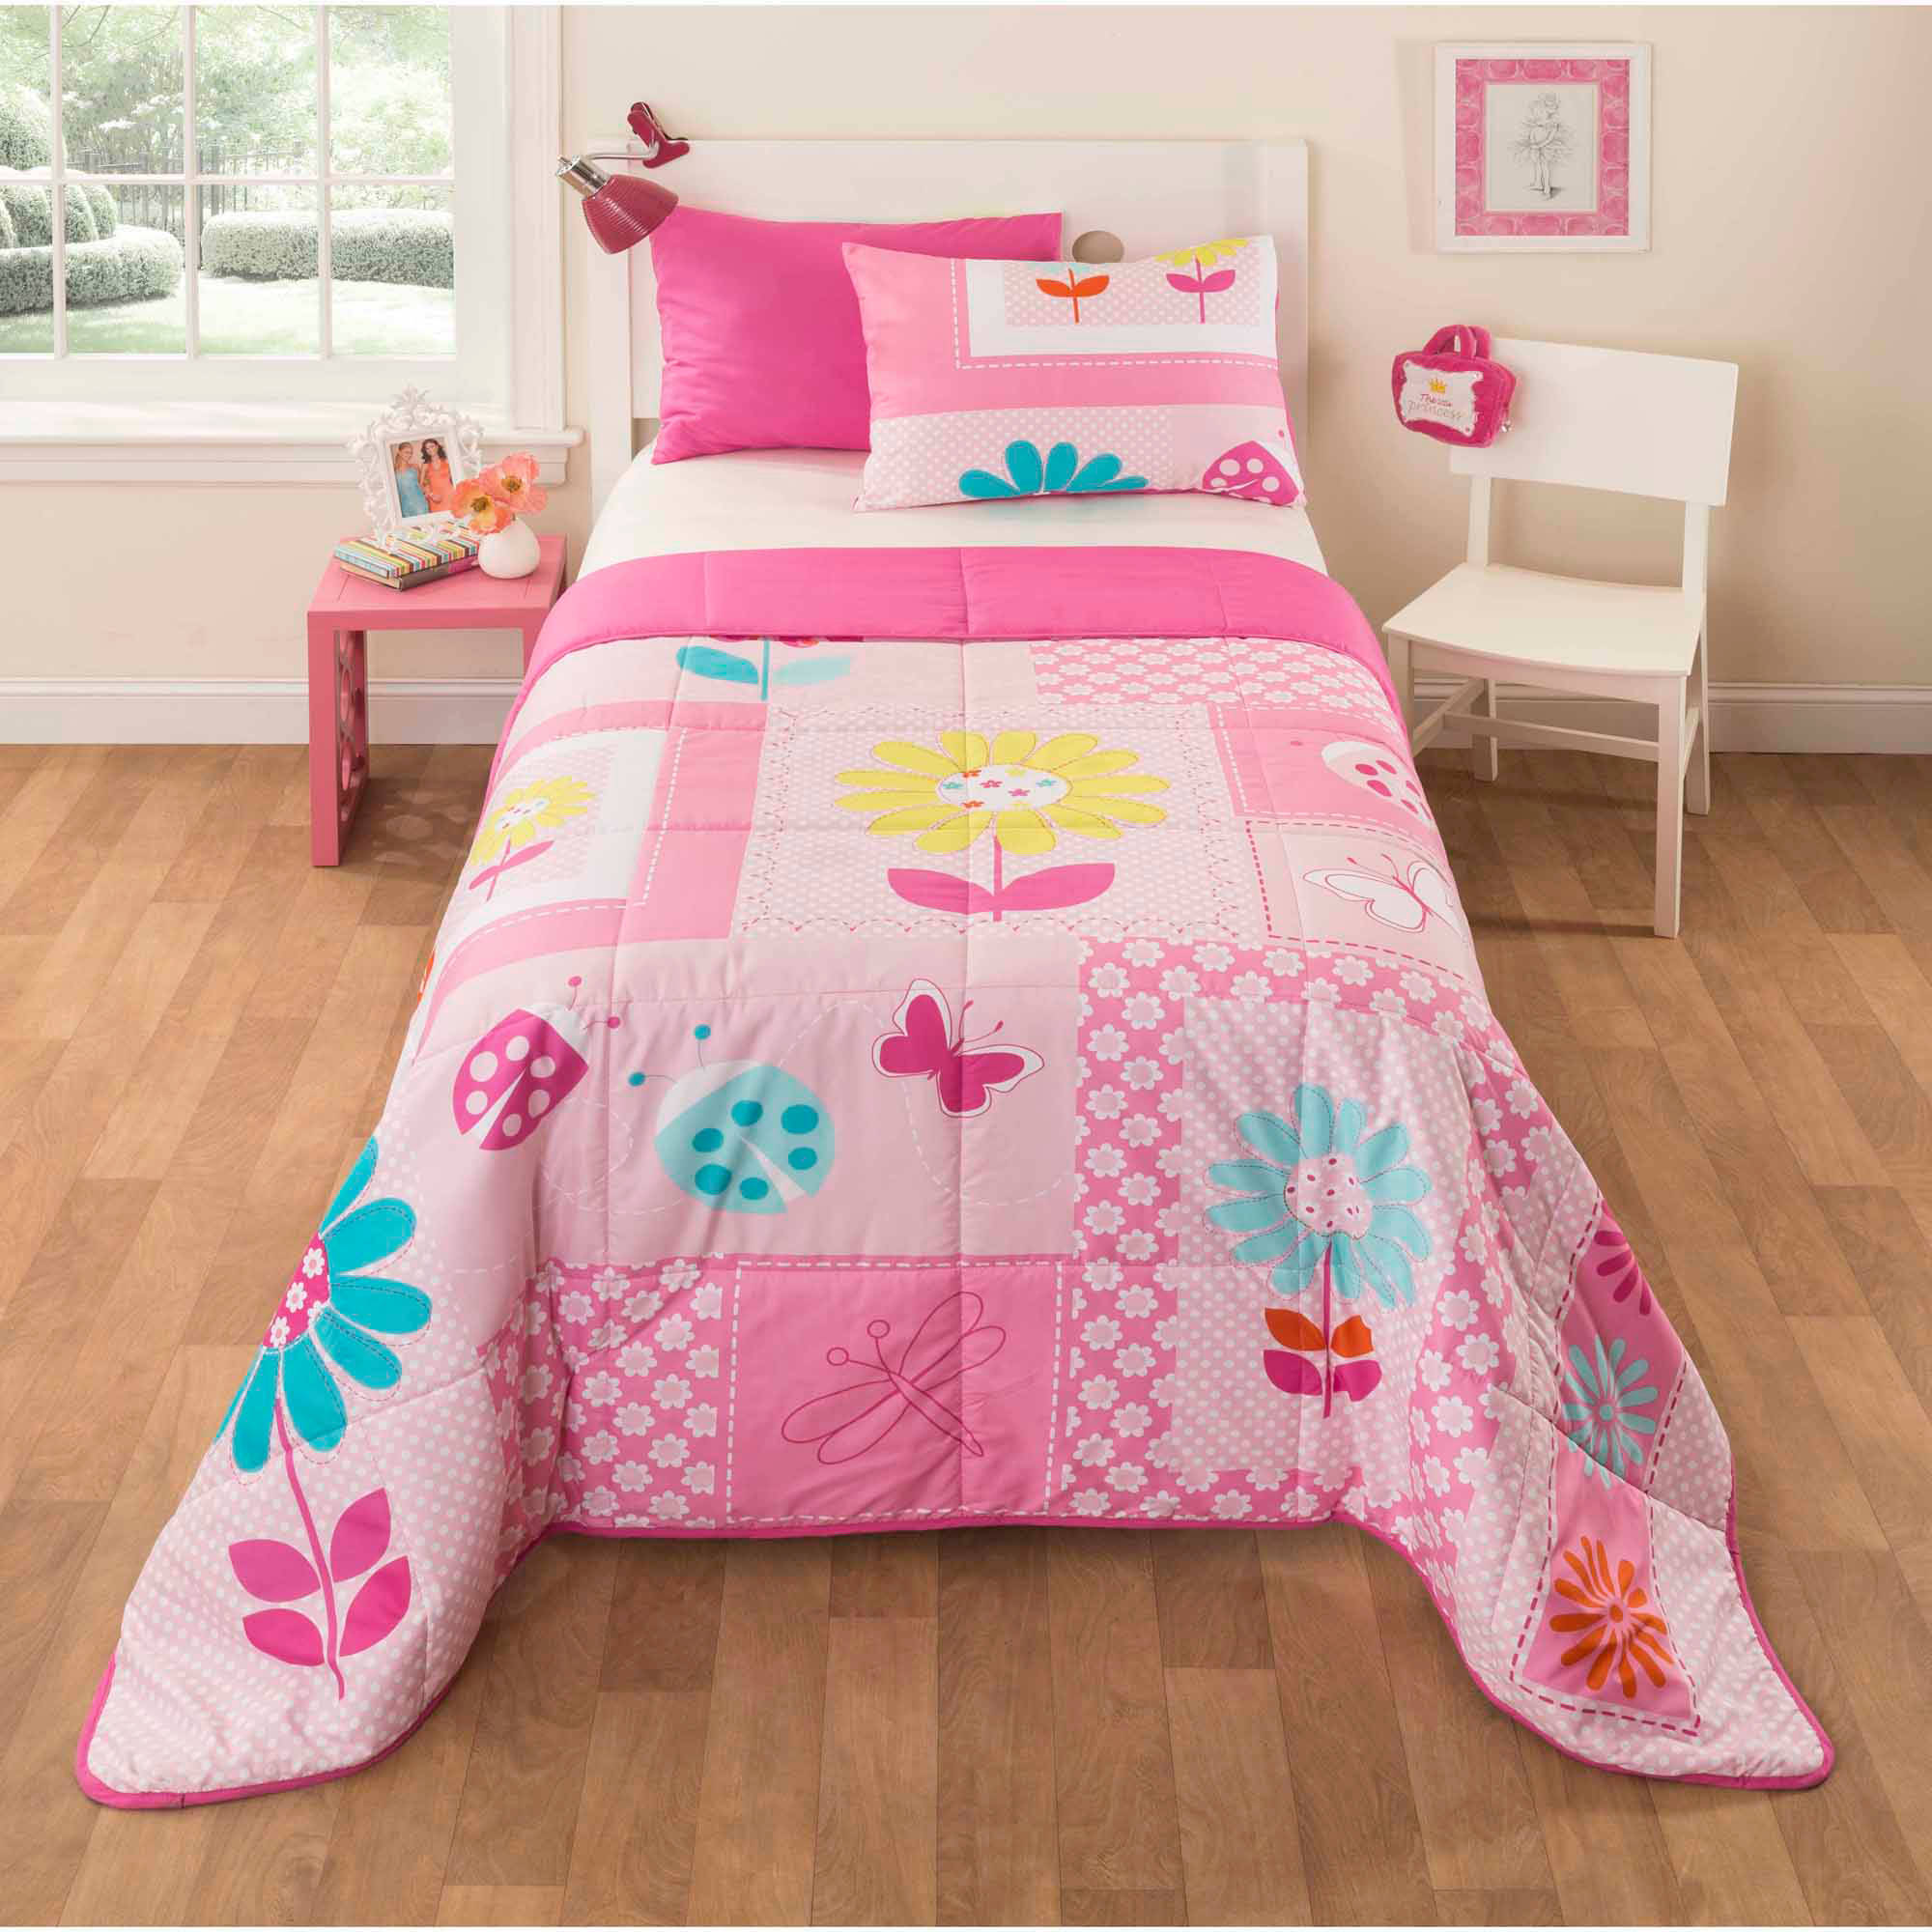 Mainstays Kids Daisy Floral Bedding Comforter Set by Idea Nuova